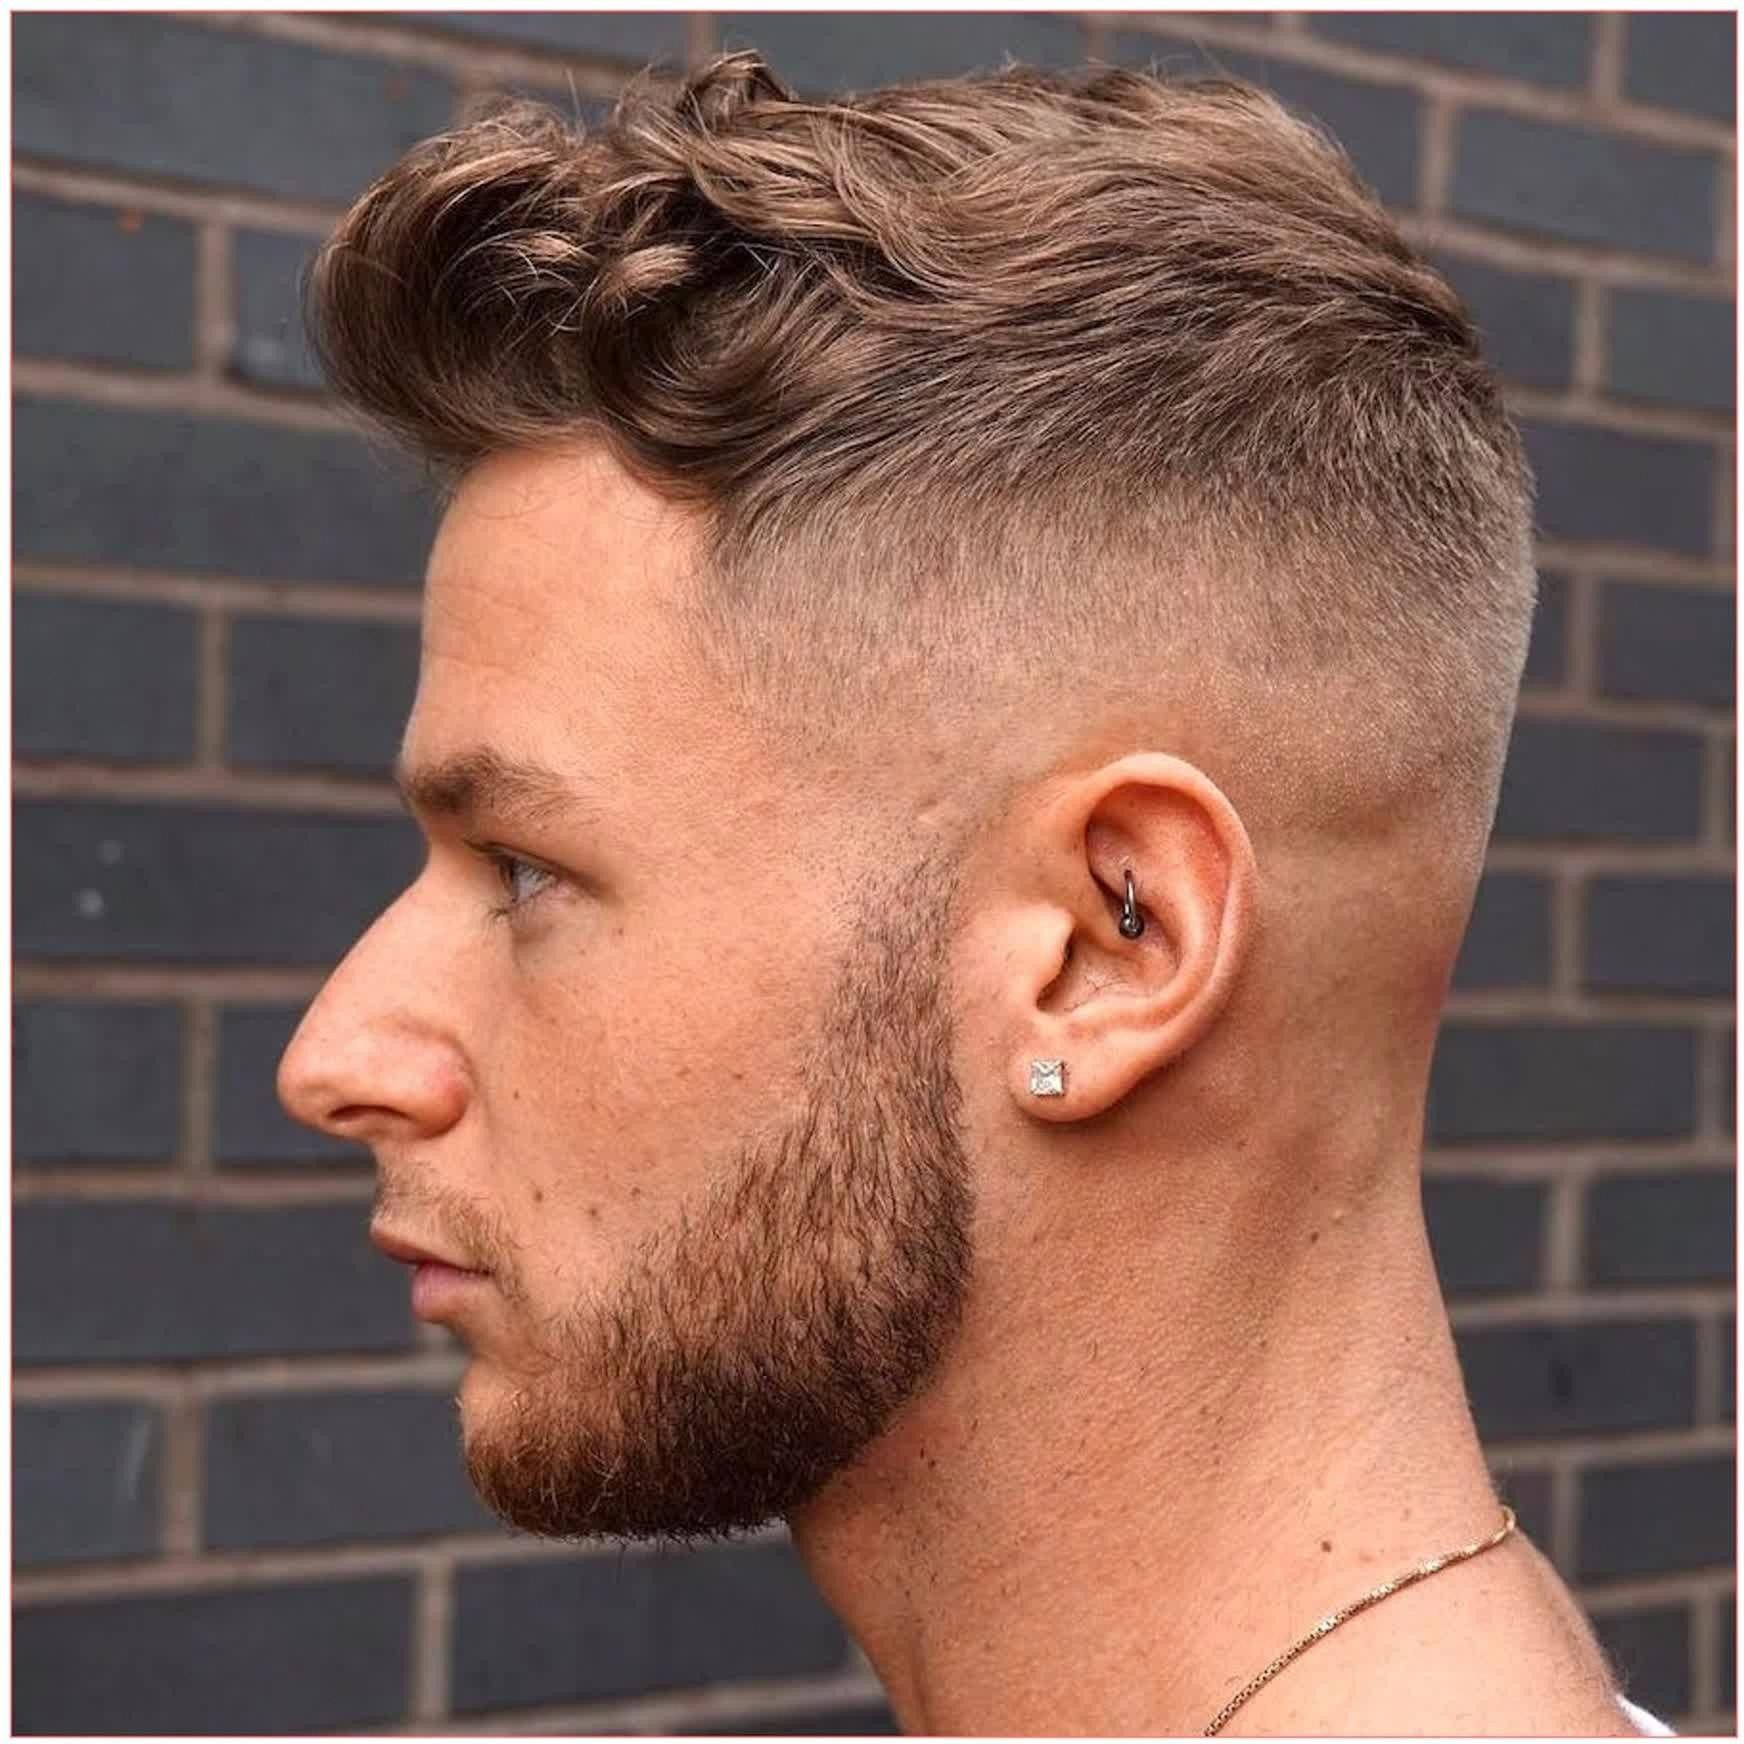 All The Preferred Hairstyles For Men With Thinning Hair Up Front Thinninghair Wavy Hair Men Curly Hair Fade Mid Fade Haircut